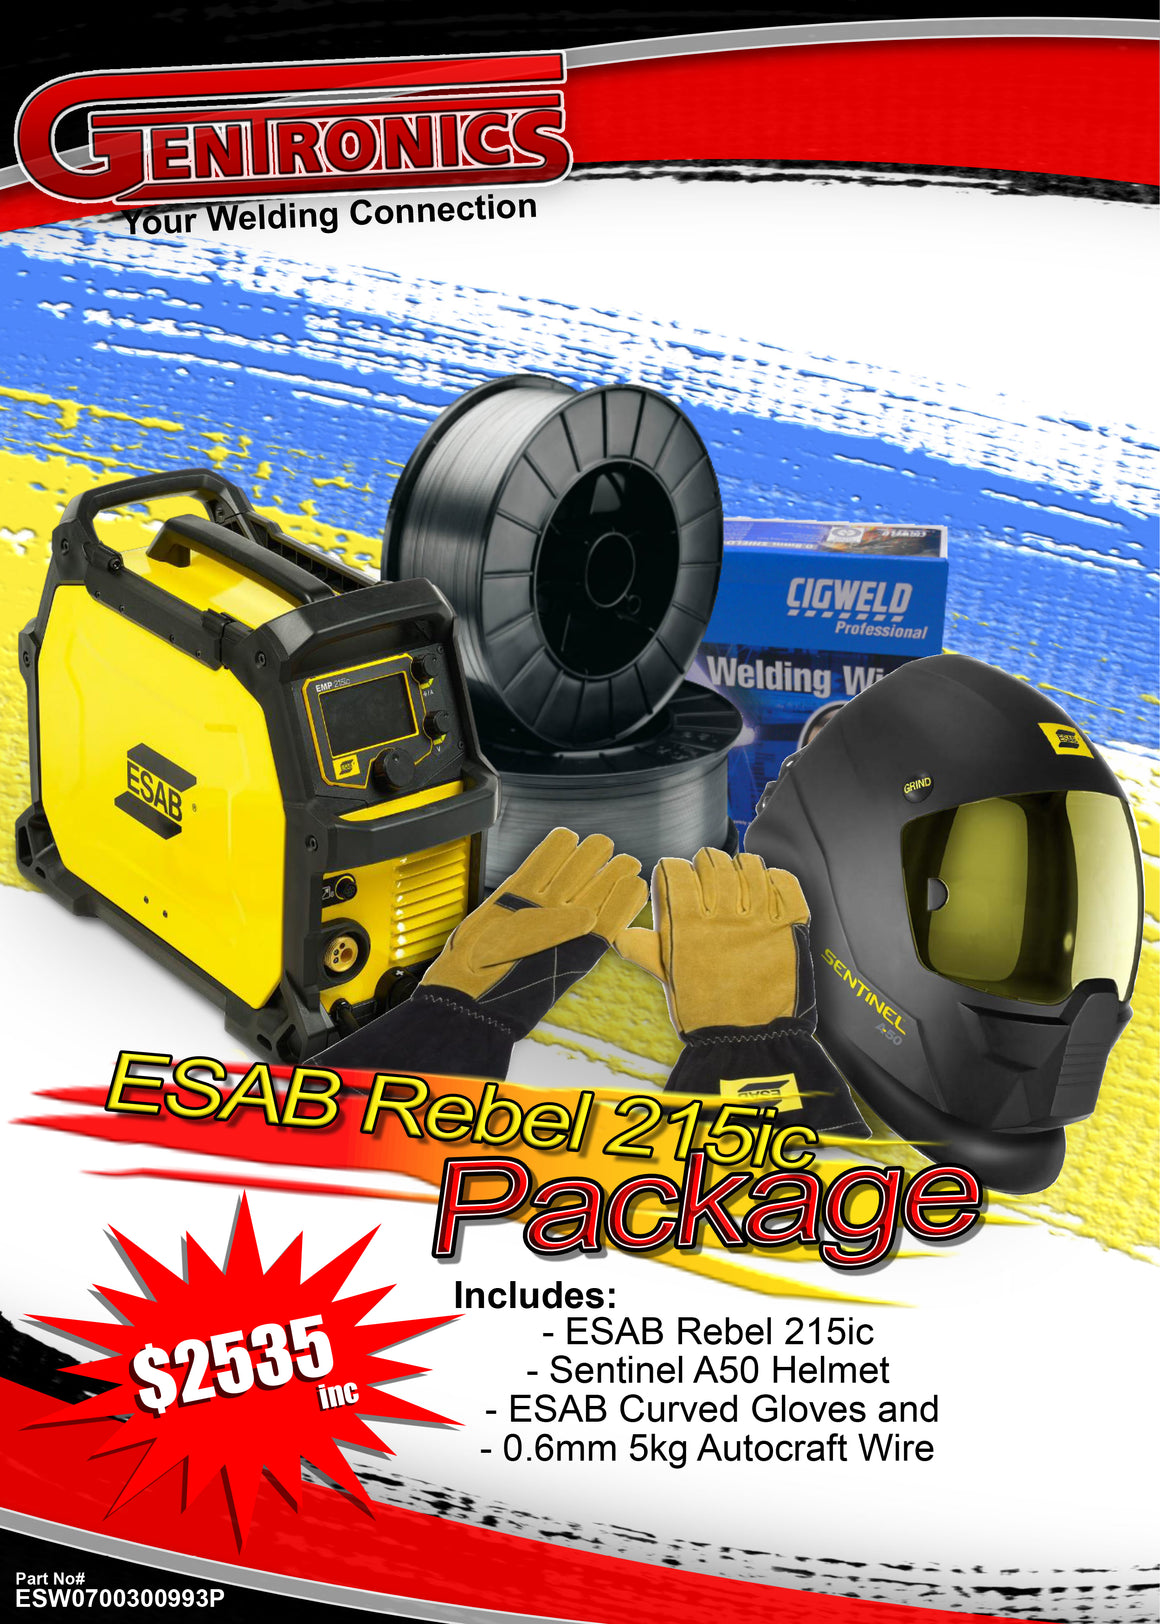 Esab Rebel 215ic Package Deal